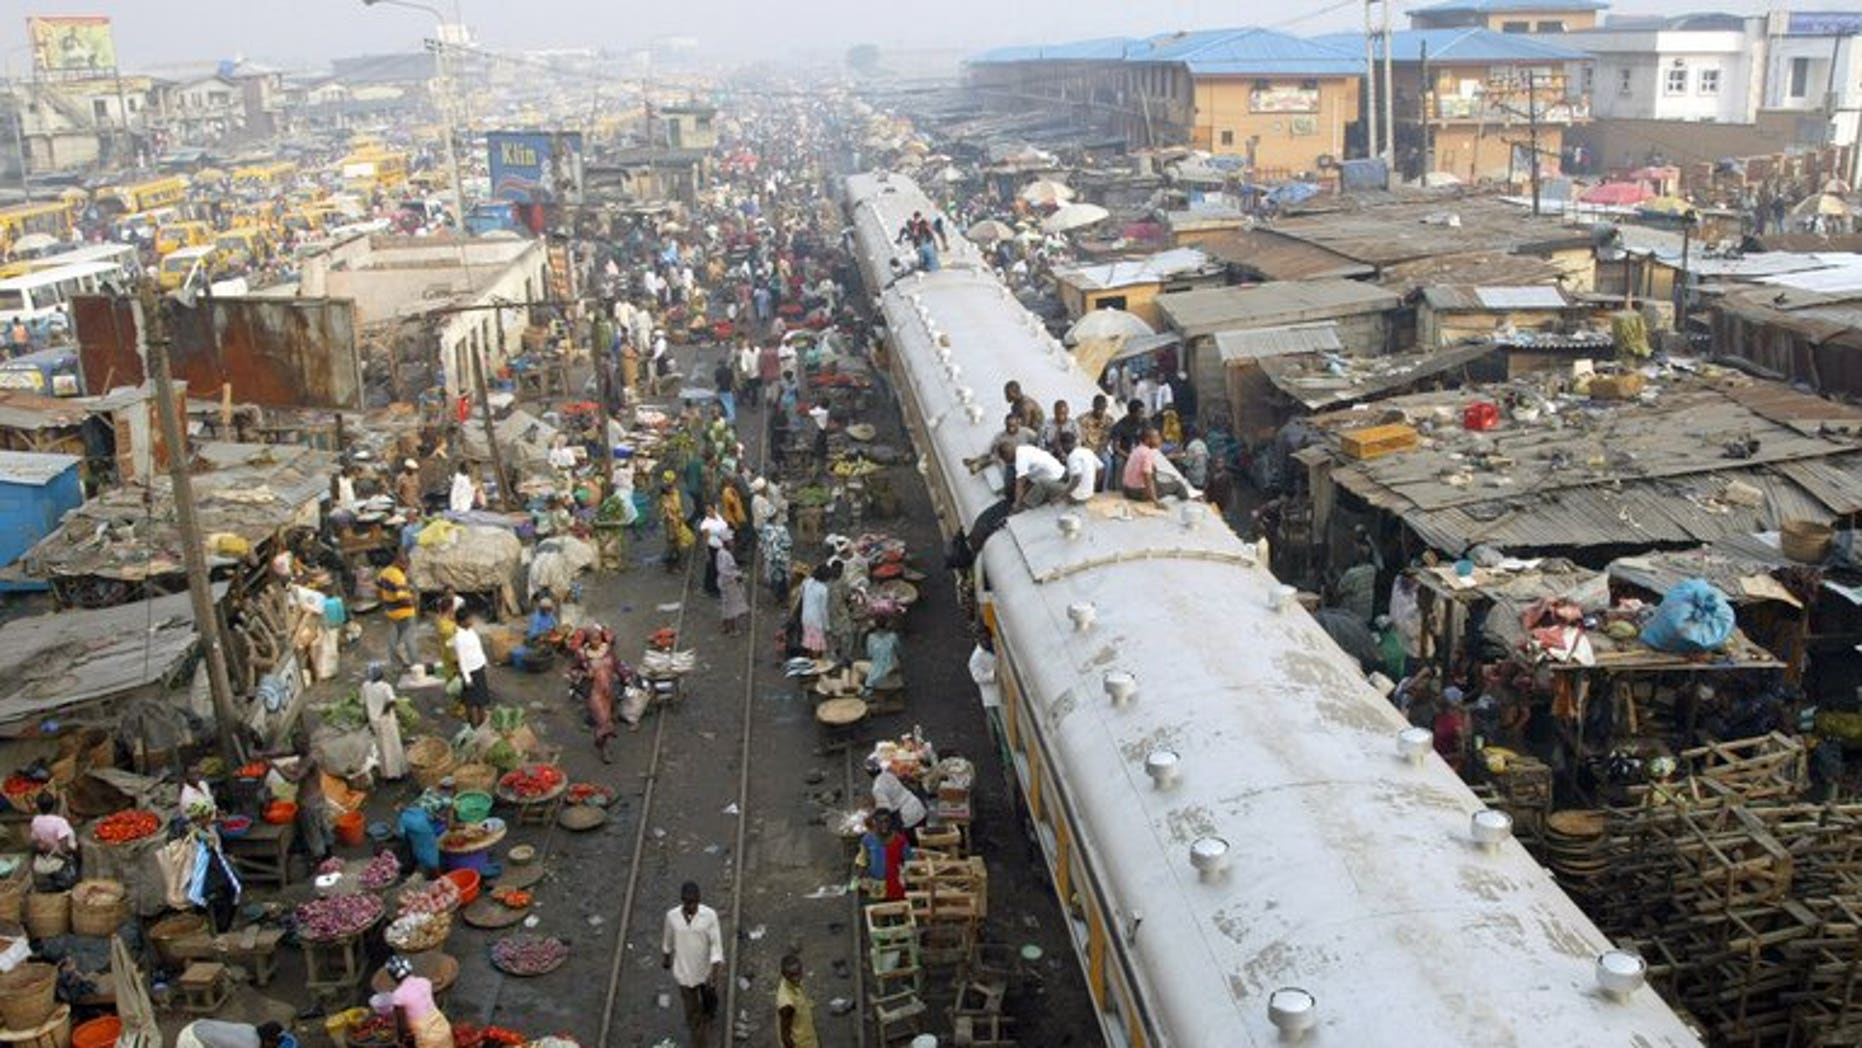 Commuters sit on coaches of a train chasing away vendors hawking their wares on the rail track in Oshodi district of Lagos on 16 November, 2007. A British national has been kidnapped by gunmen shortly after landing at the international airport in Lagos, Nigeria's largest city, a diplomat and a private security source told AFP Friday.